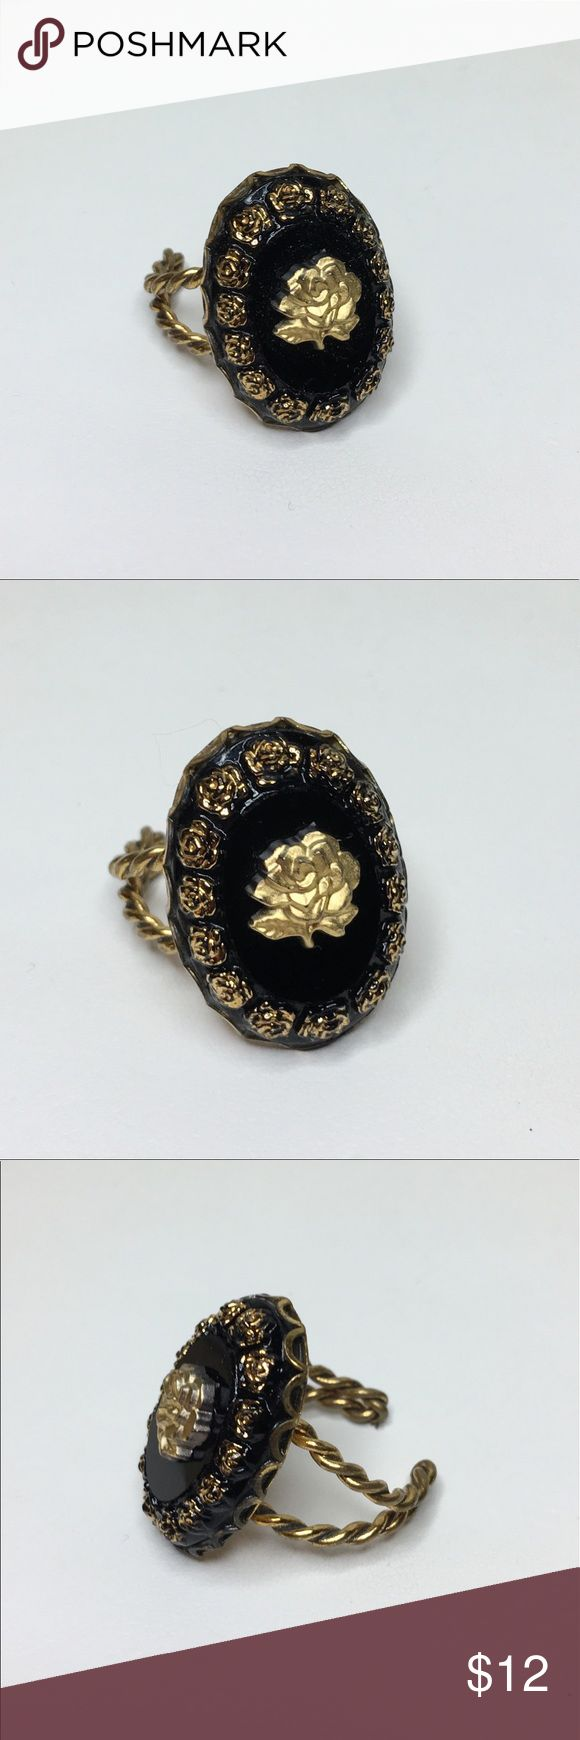 "🆕Vintage Black and Gold Rose Ring An adjustable ring with a 1"" face, made from black glass sand graced with a gold rose. Set in a brass open ring setting. This appears to have been a handmade item; some smudging on the gold border of the ring and solder marks seen on the back of the ring. In very good vintage condition; a beautiful example of rustic European craftsmanship. Vintage Jewelry Rings"